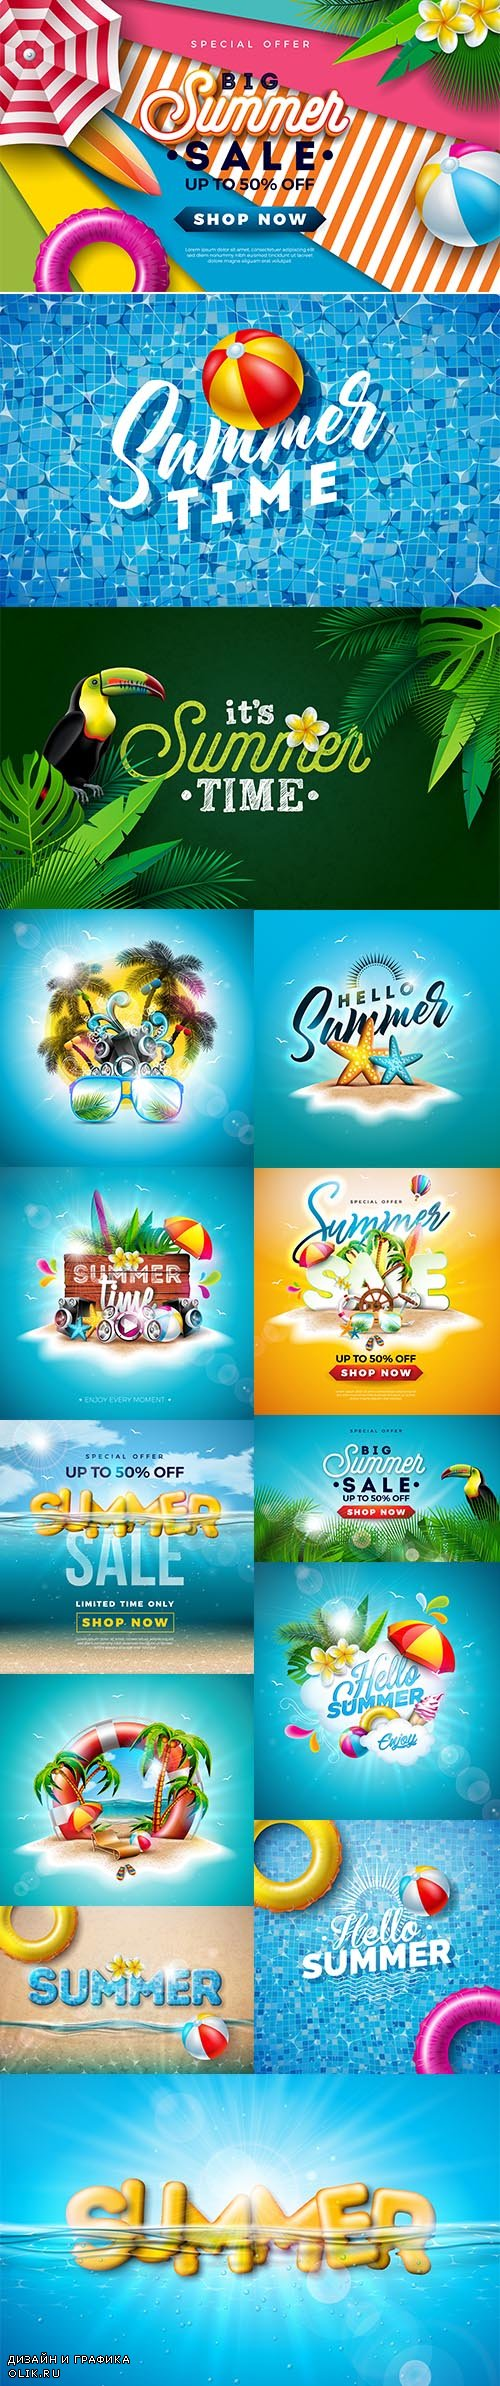 Colorful Summer Sale Banner Template Illustrations Pack